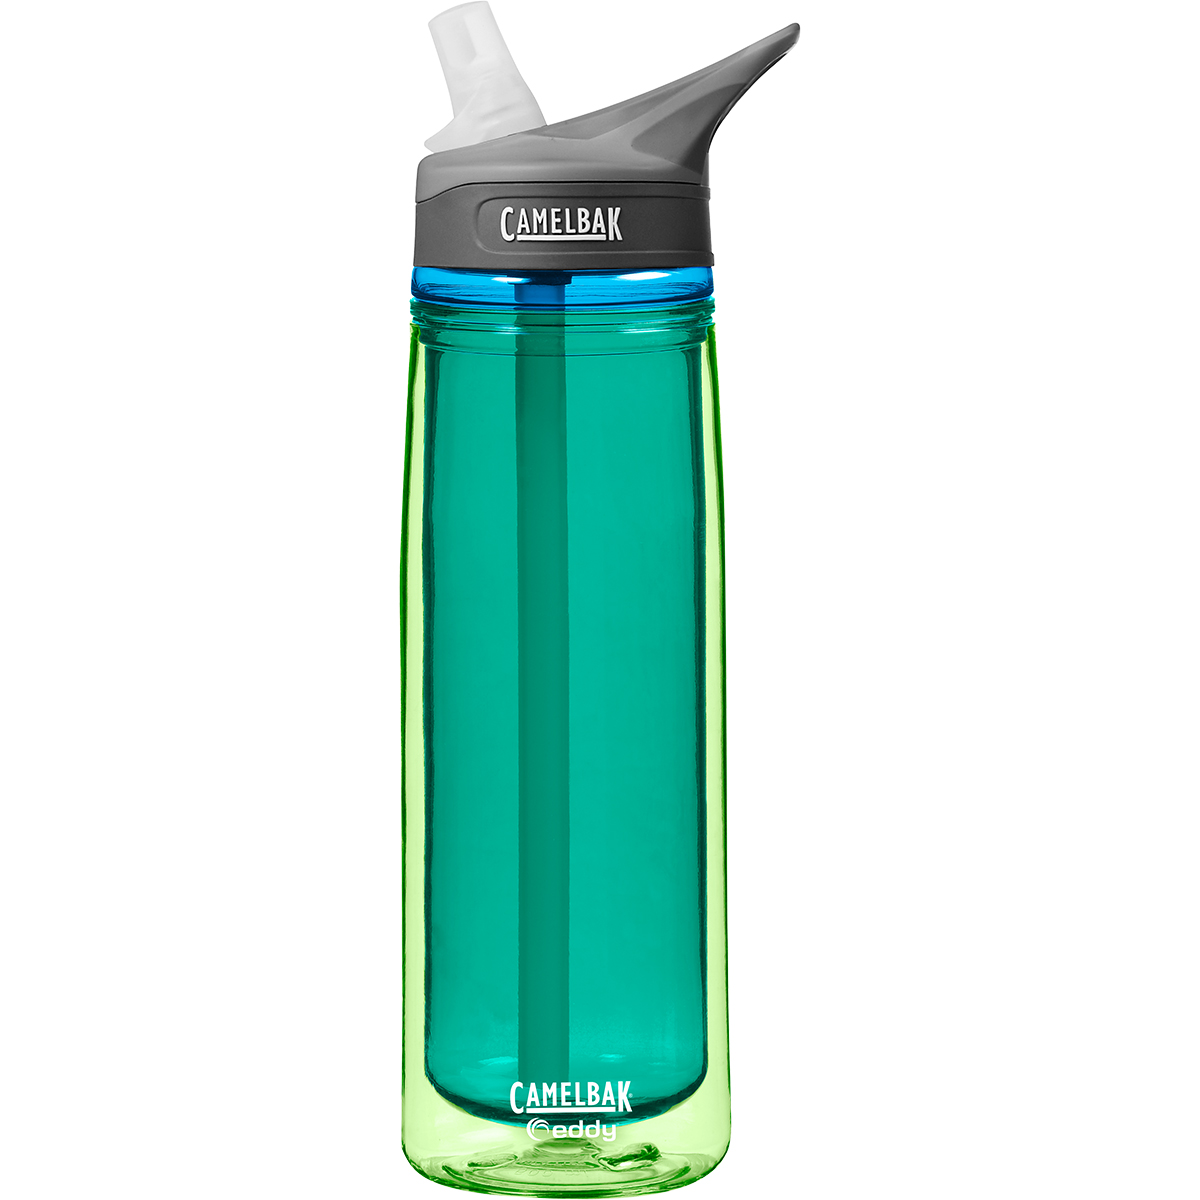 Camelbak-6L-Eddy-Insulated-Water-Bottle thumbnail 4